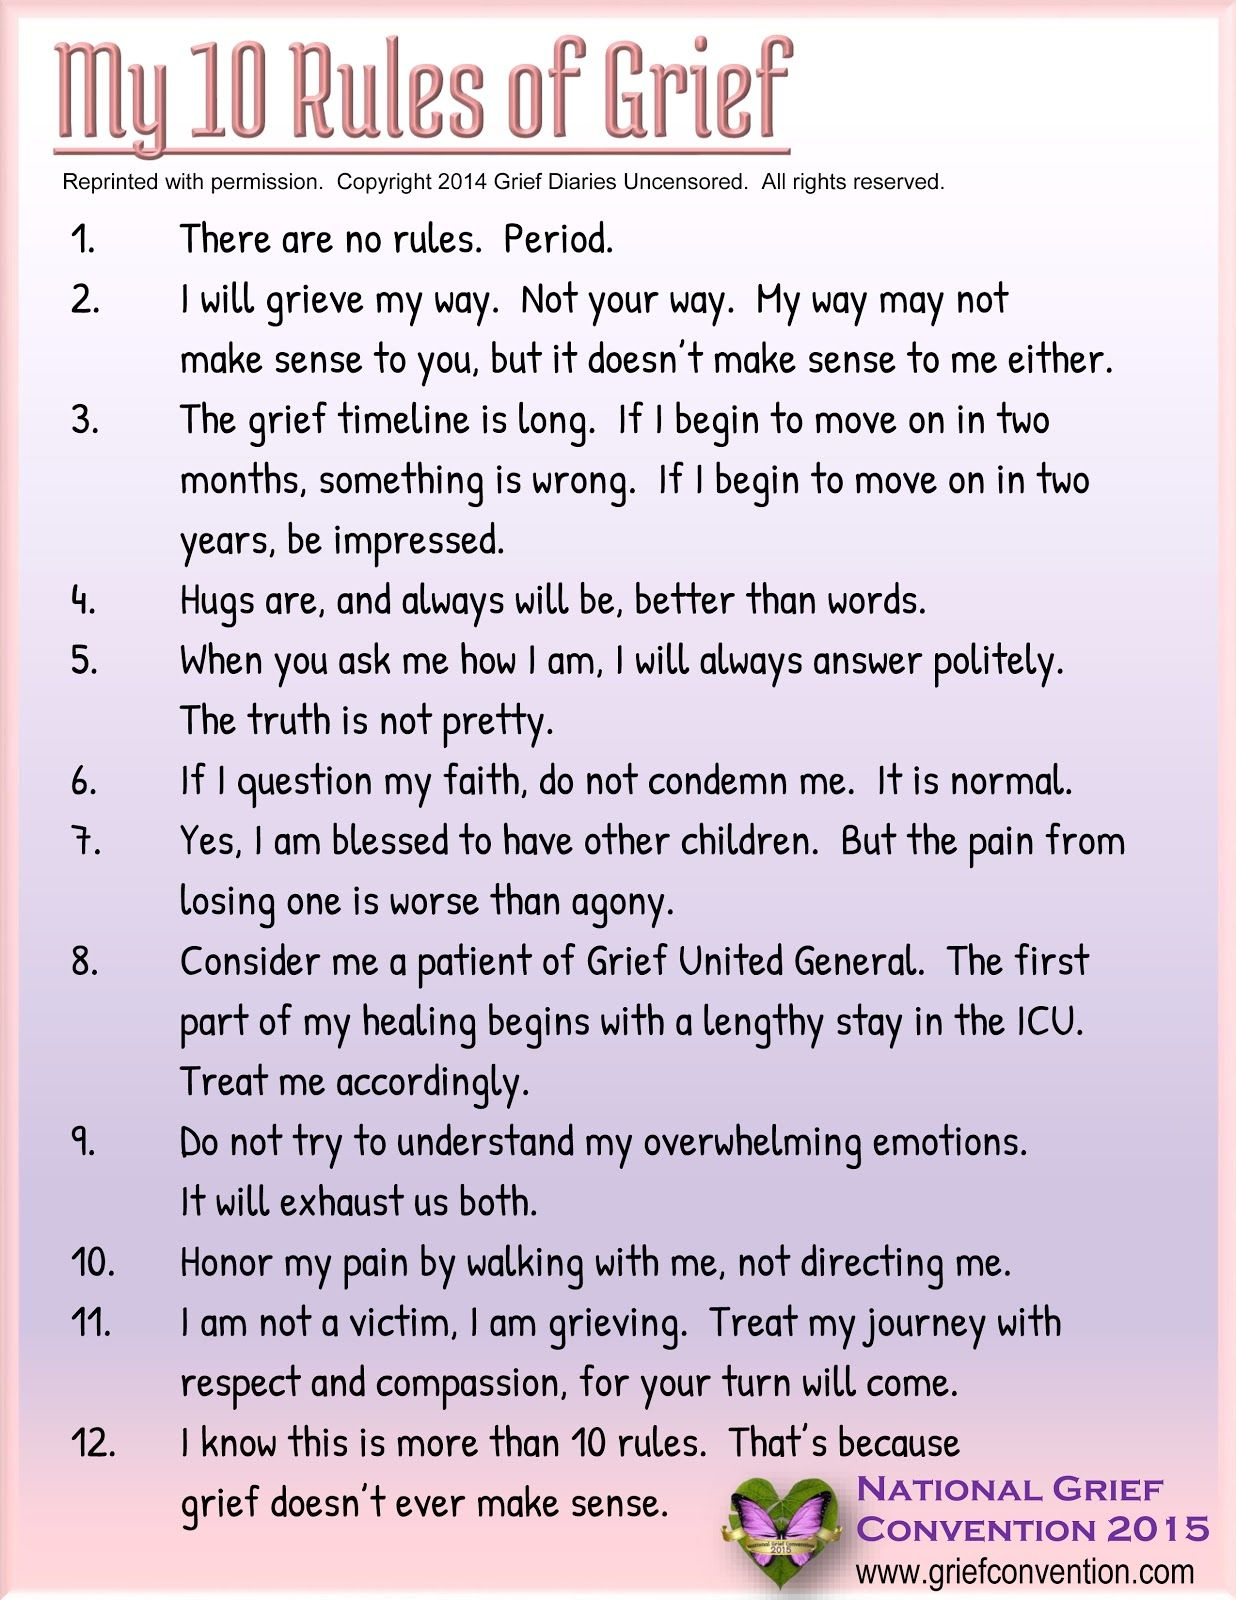 National Grief Convention My 10 Rules Of Grief Grief Therapy Grief Counseling Grief Healing